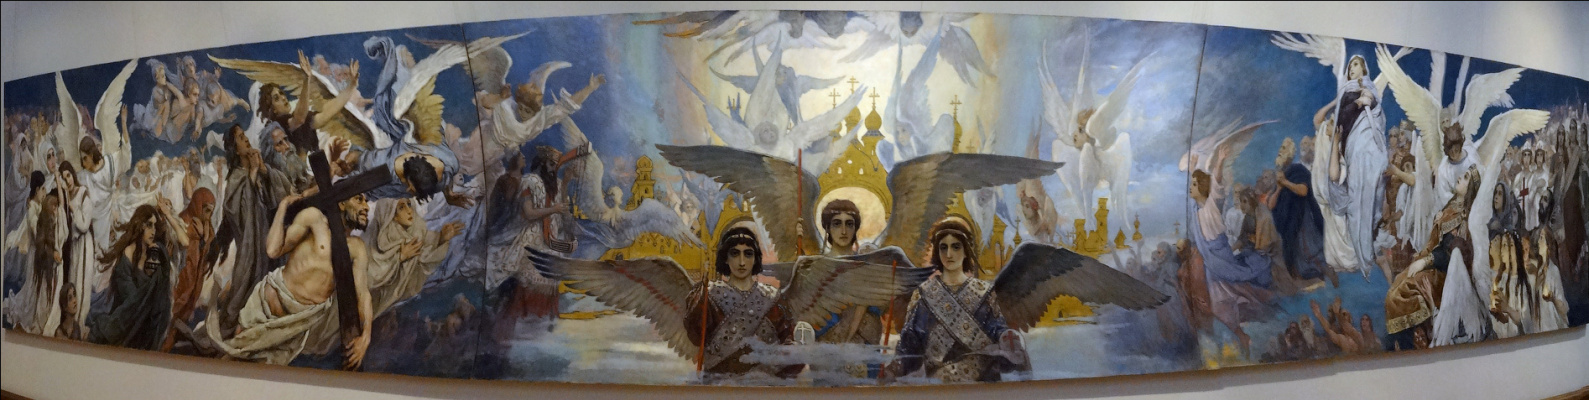 "Victor Mikhailovich Vasnetsov. Triptych ""the Joy of the righteous in the Lord. The threshold of Paradise"". The sketch for the painting of the Vladimir Cathedral in Kiev"